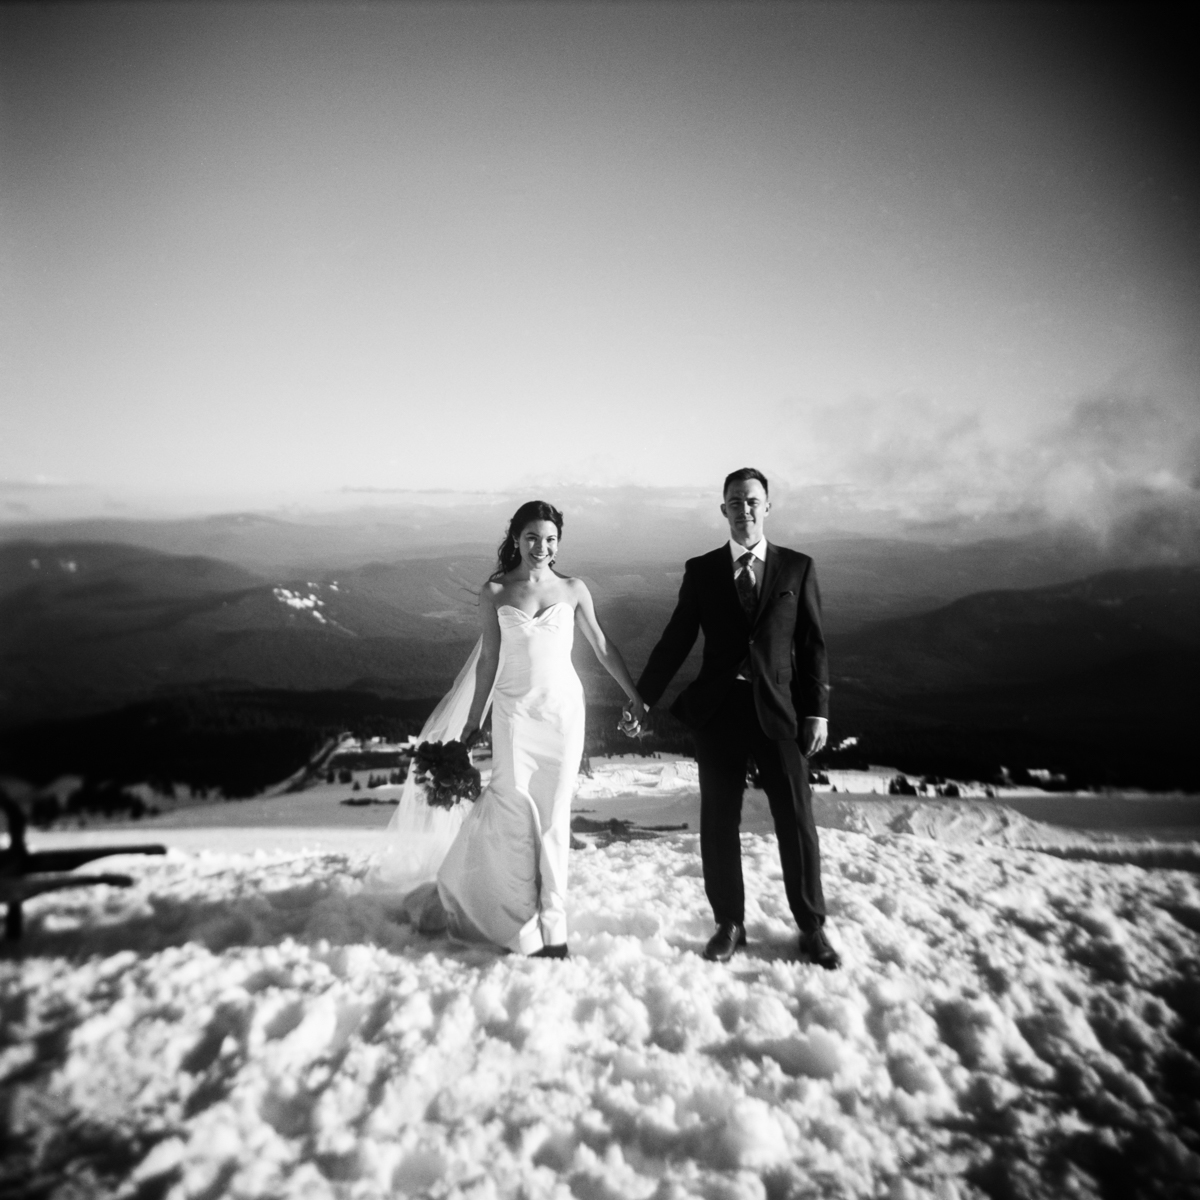 MOLLY & RYAN  // SILCOX HUT AT TIMBERLINE LODGE